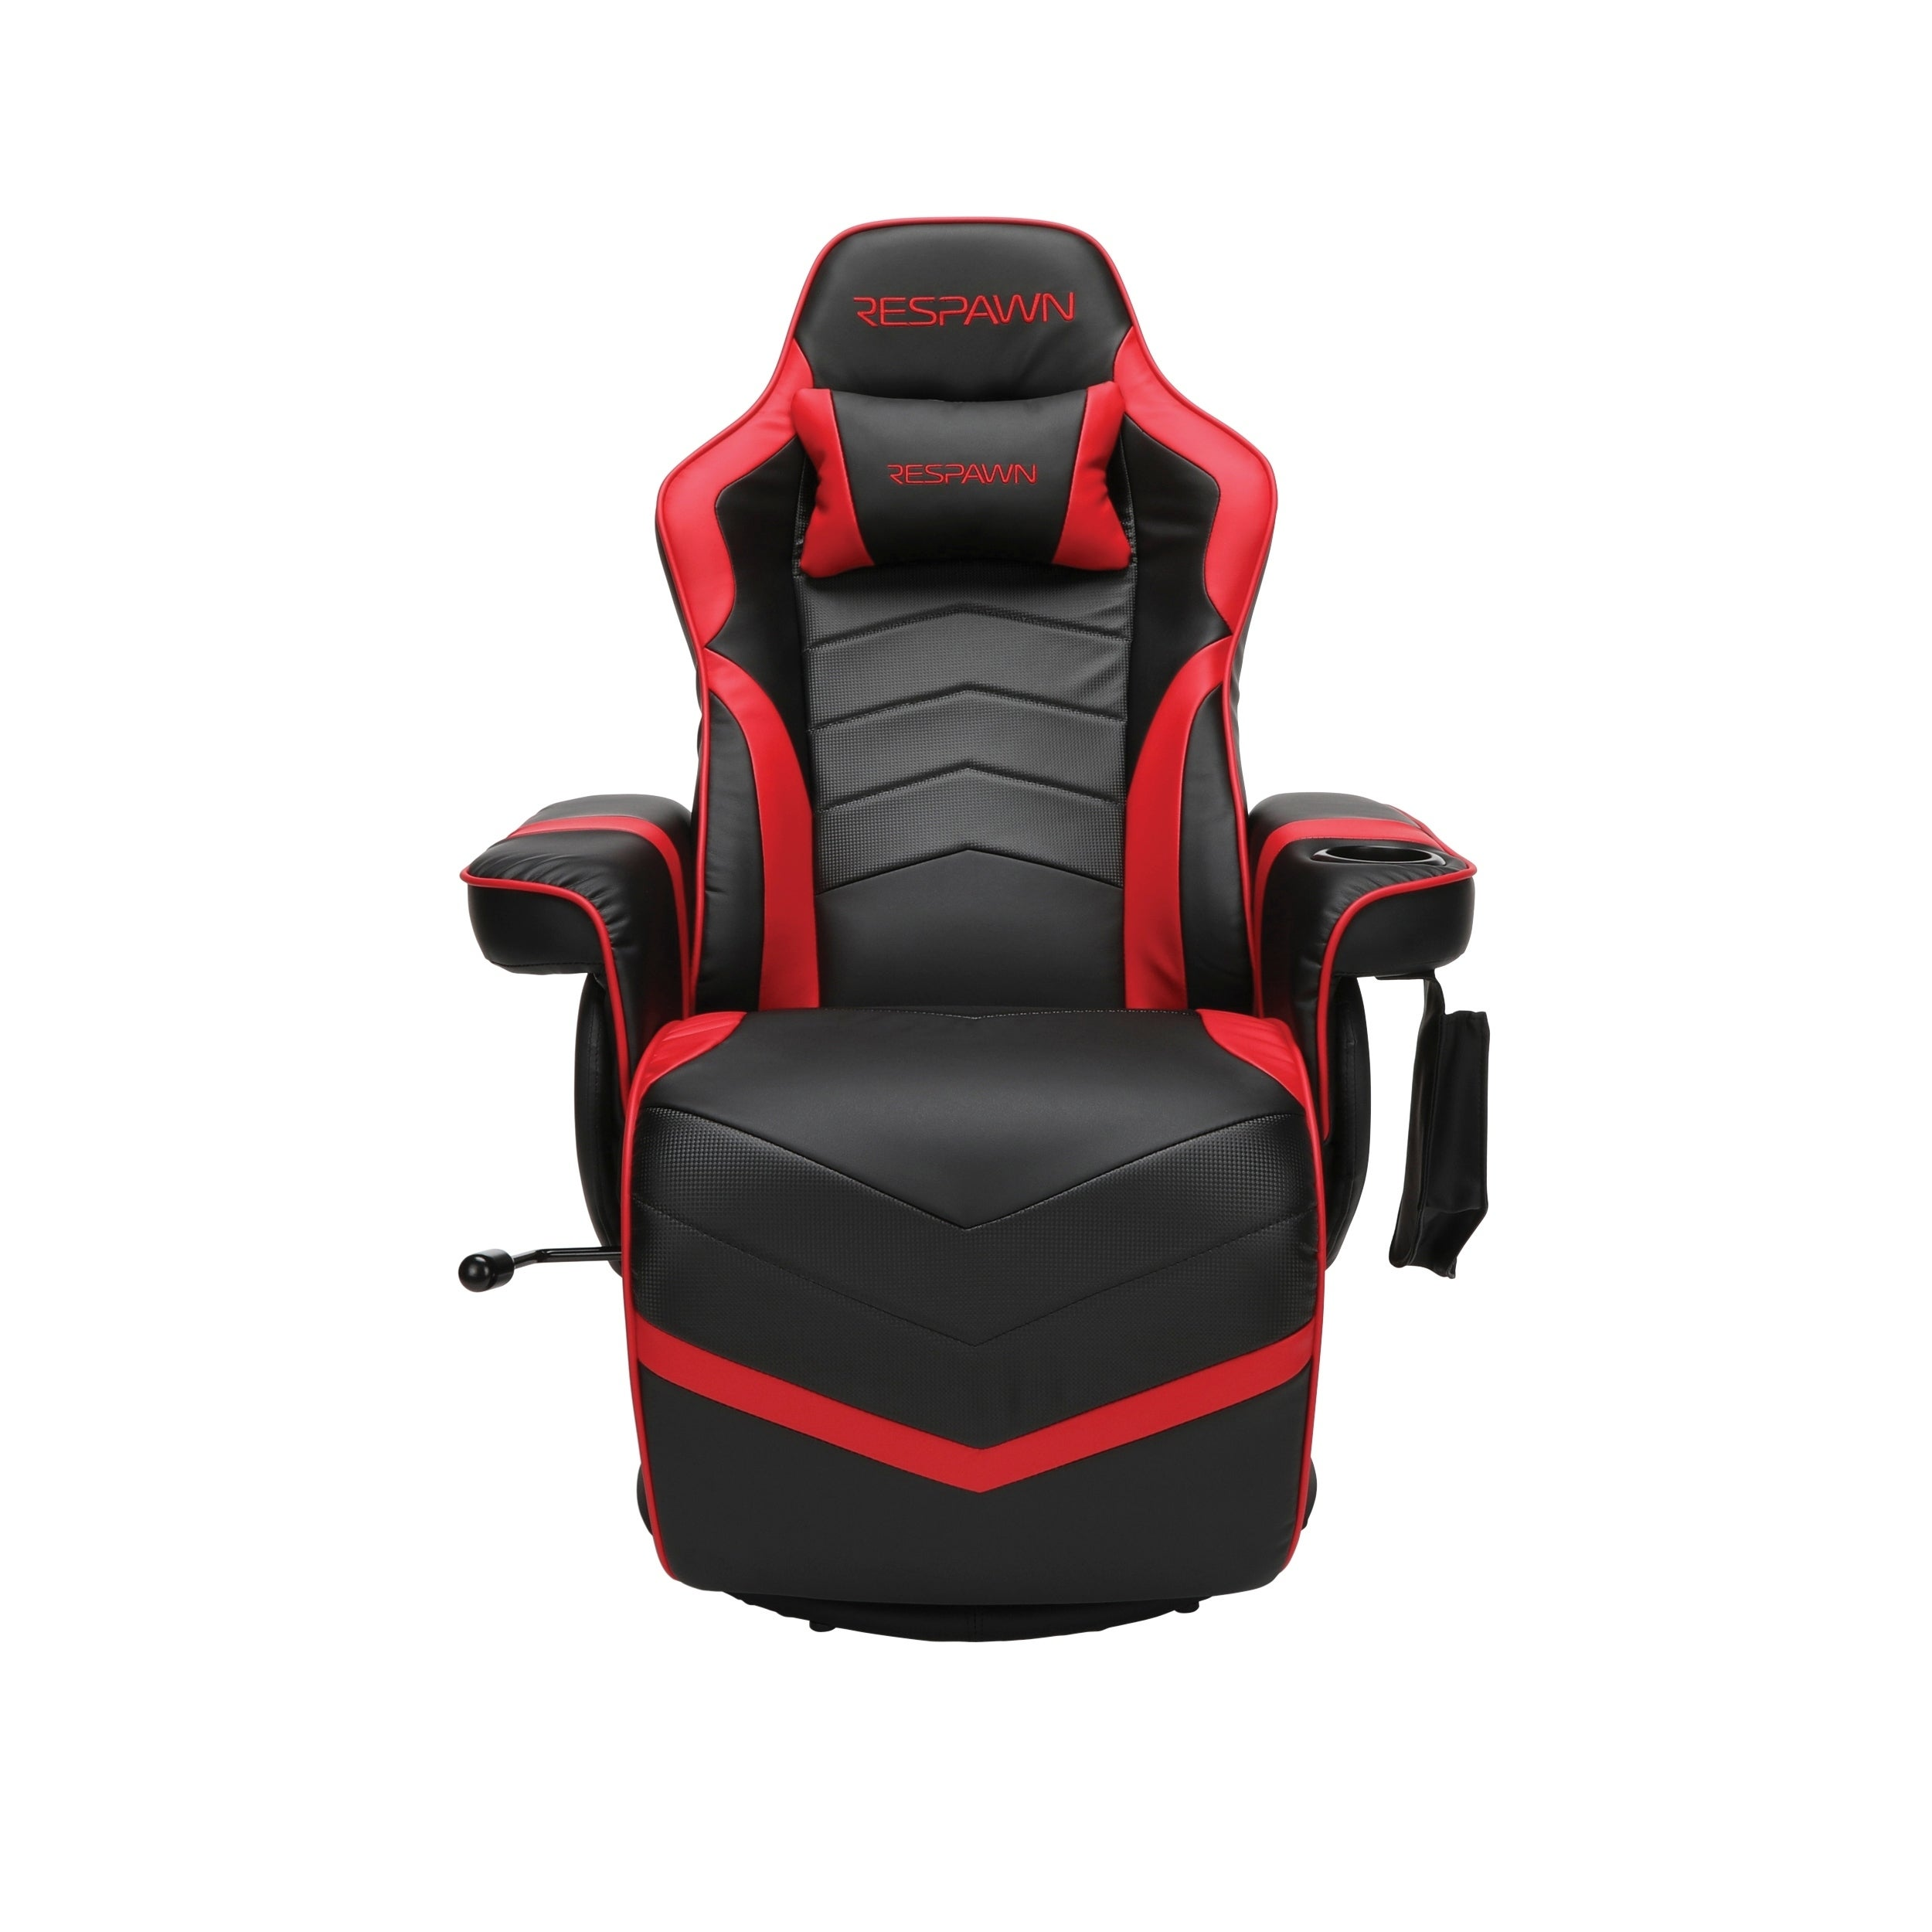 Fine Respawn 900 Racing Style Gaming Recliner Reclining Gaming Chair Creativecarmelina Interior Chair Design Creativecarmelinacom